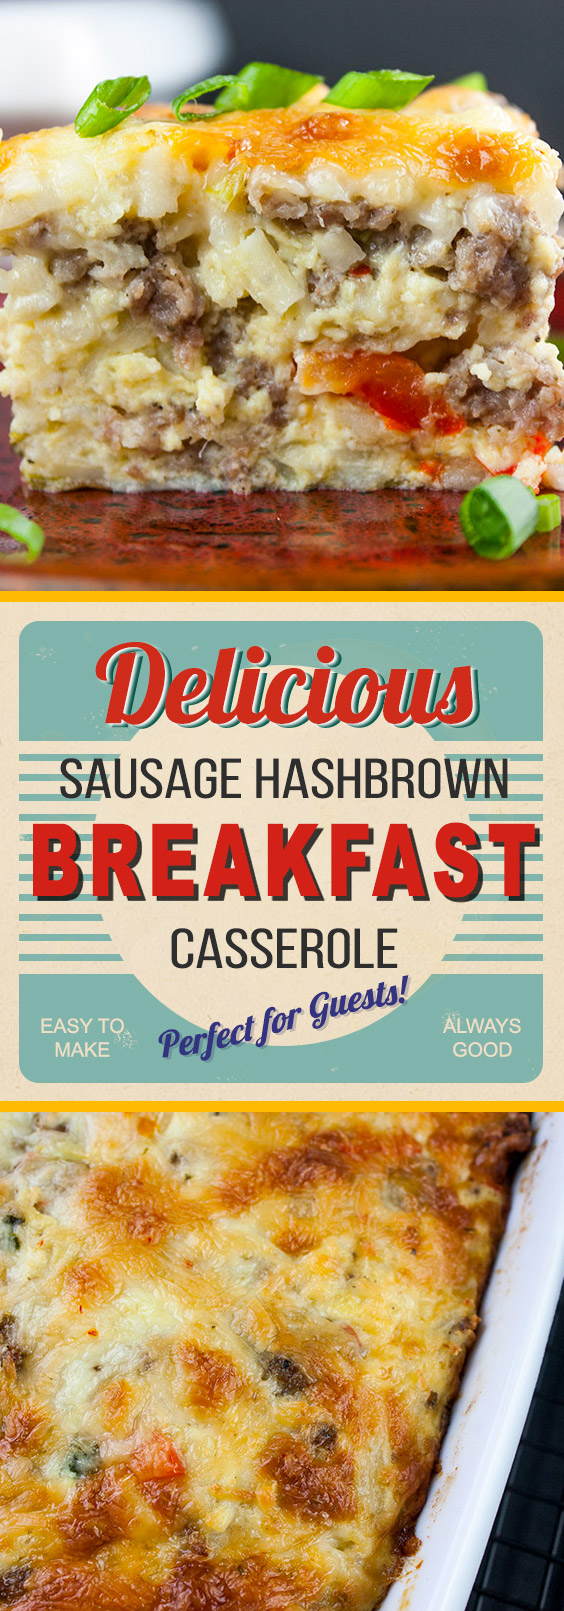 Sausage Hashbrown Breakfast Casserole - All your breakfast favorites baked in one pan! Can be made the night before and is perfect for a crowd.